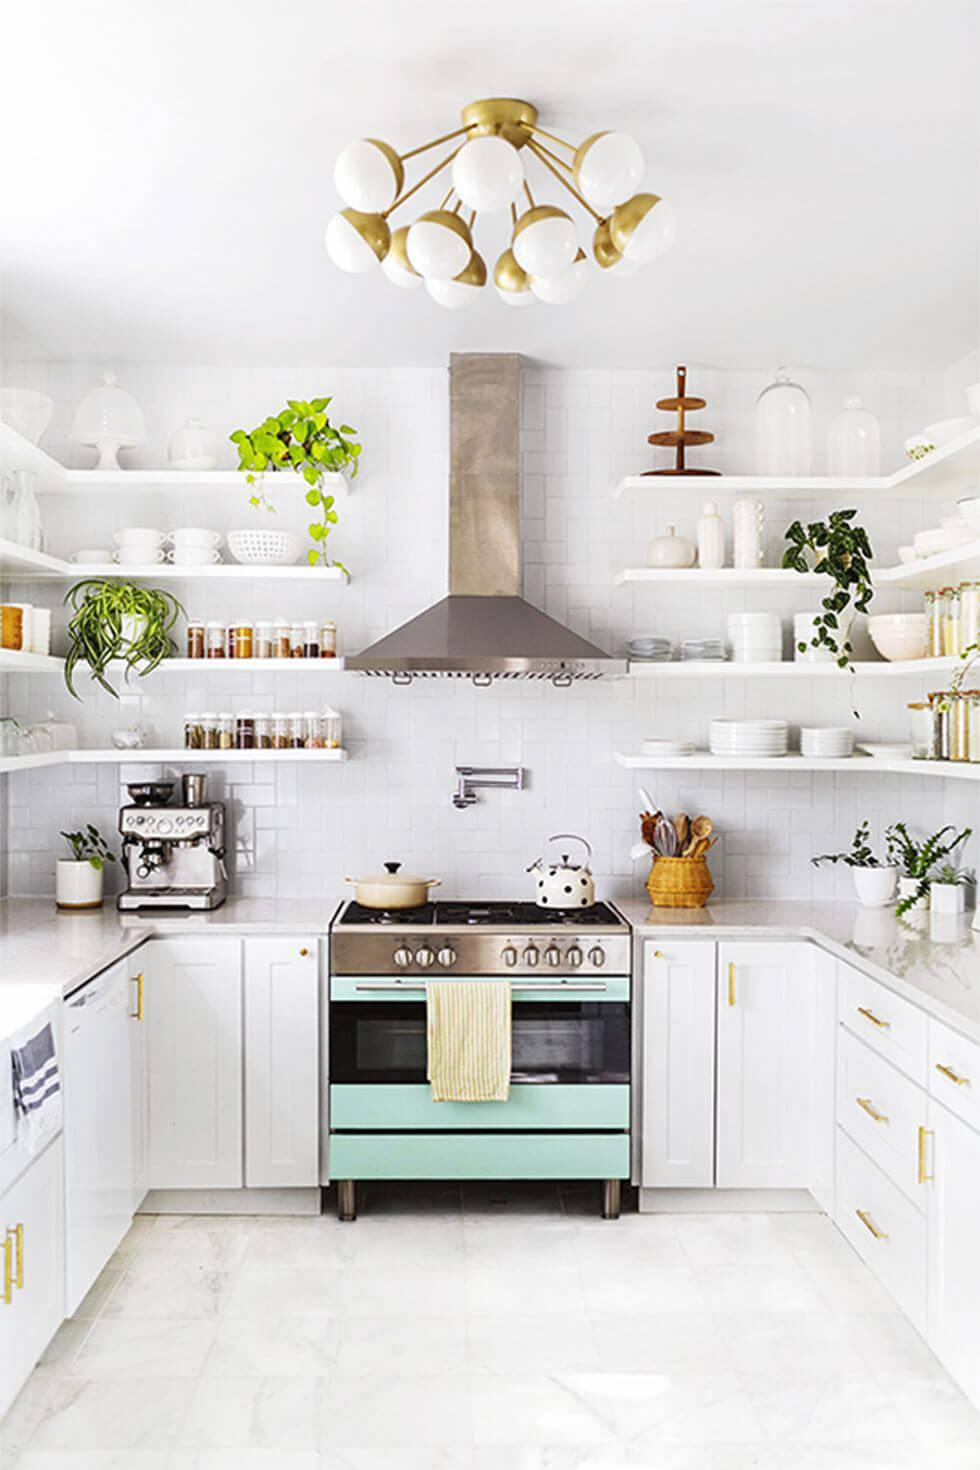 Small white kitchen with shelves on walls, a light blue oven, and a statement gold lamp